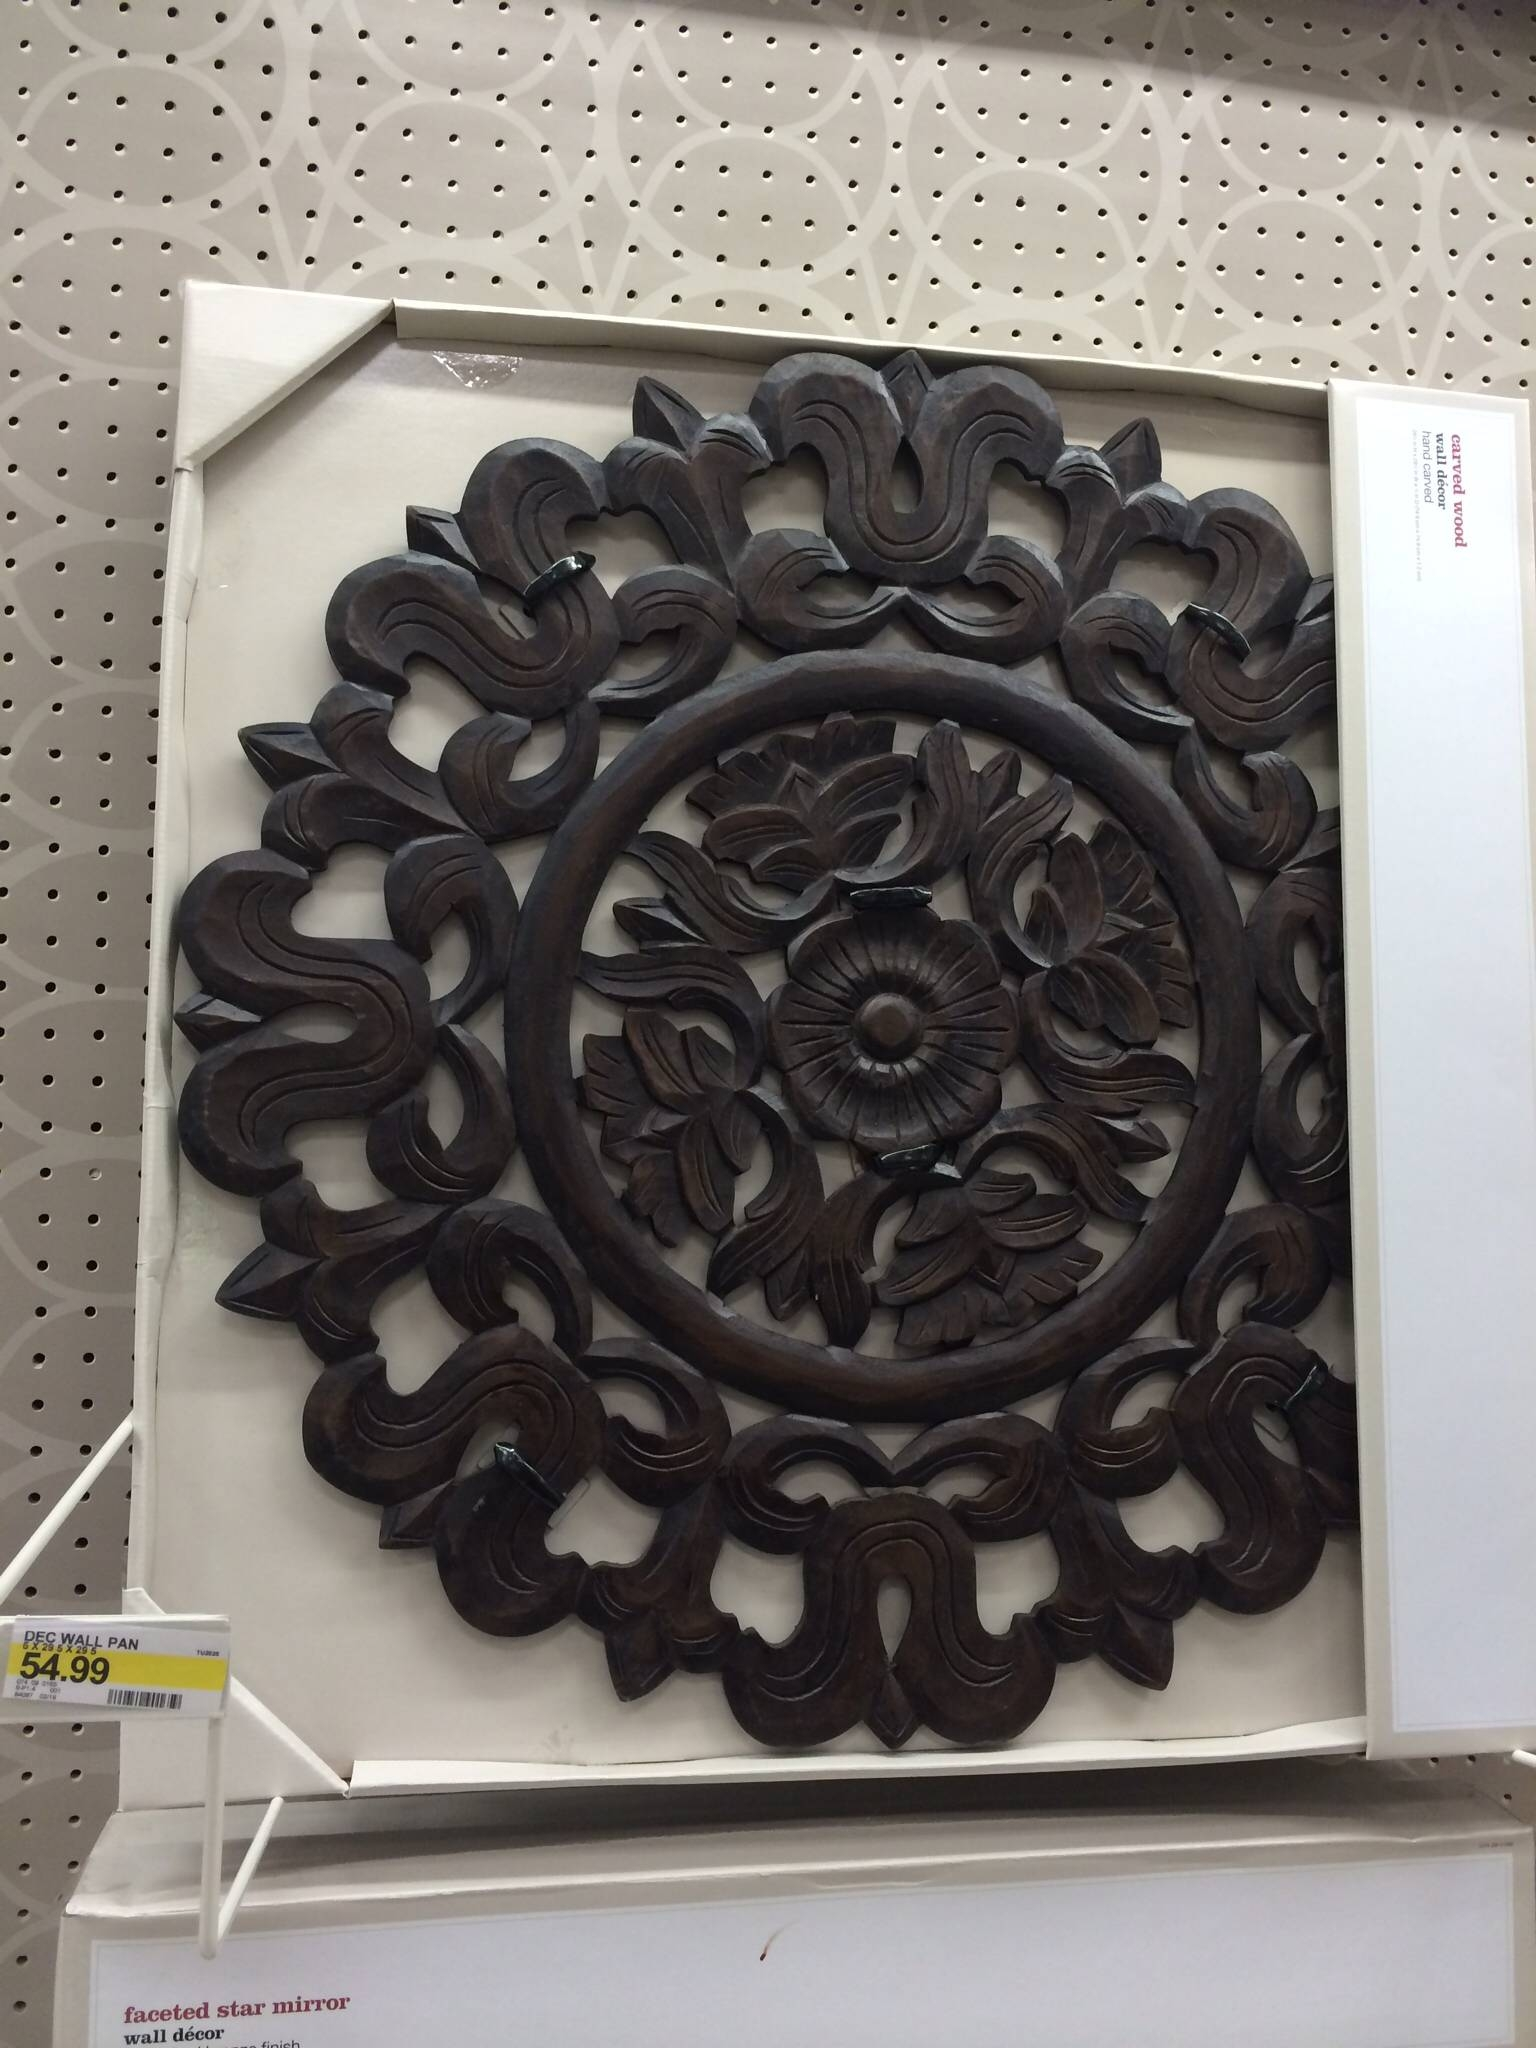 Wall Art Designs: Target Wall Art Carved Wood Wall Art Home Design Intended For Most Up To Date Target Metal Wall Art (View 8 of 25)